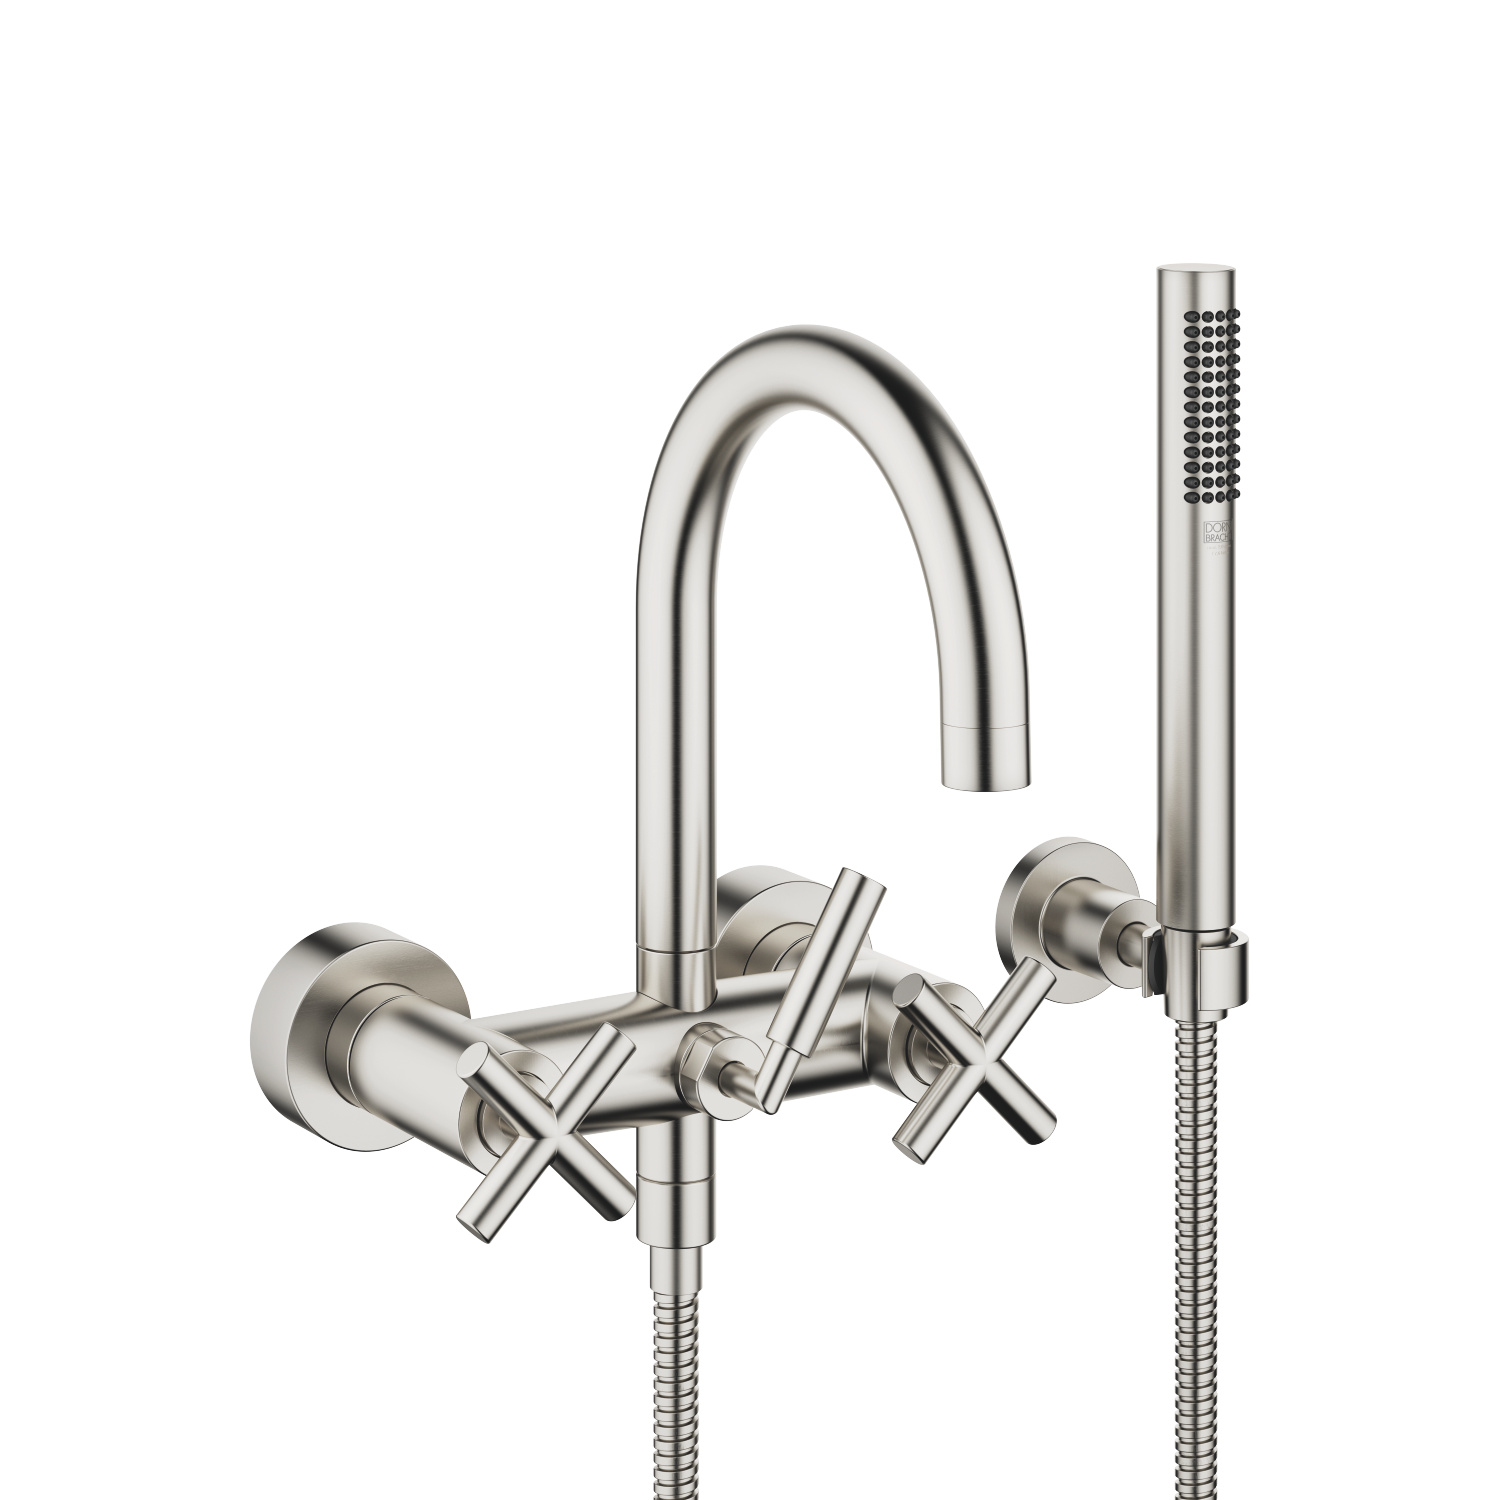 Bath mixer for wall mounting with hand shower set - platinum matt